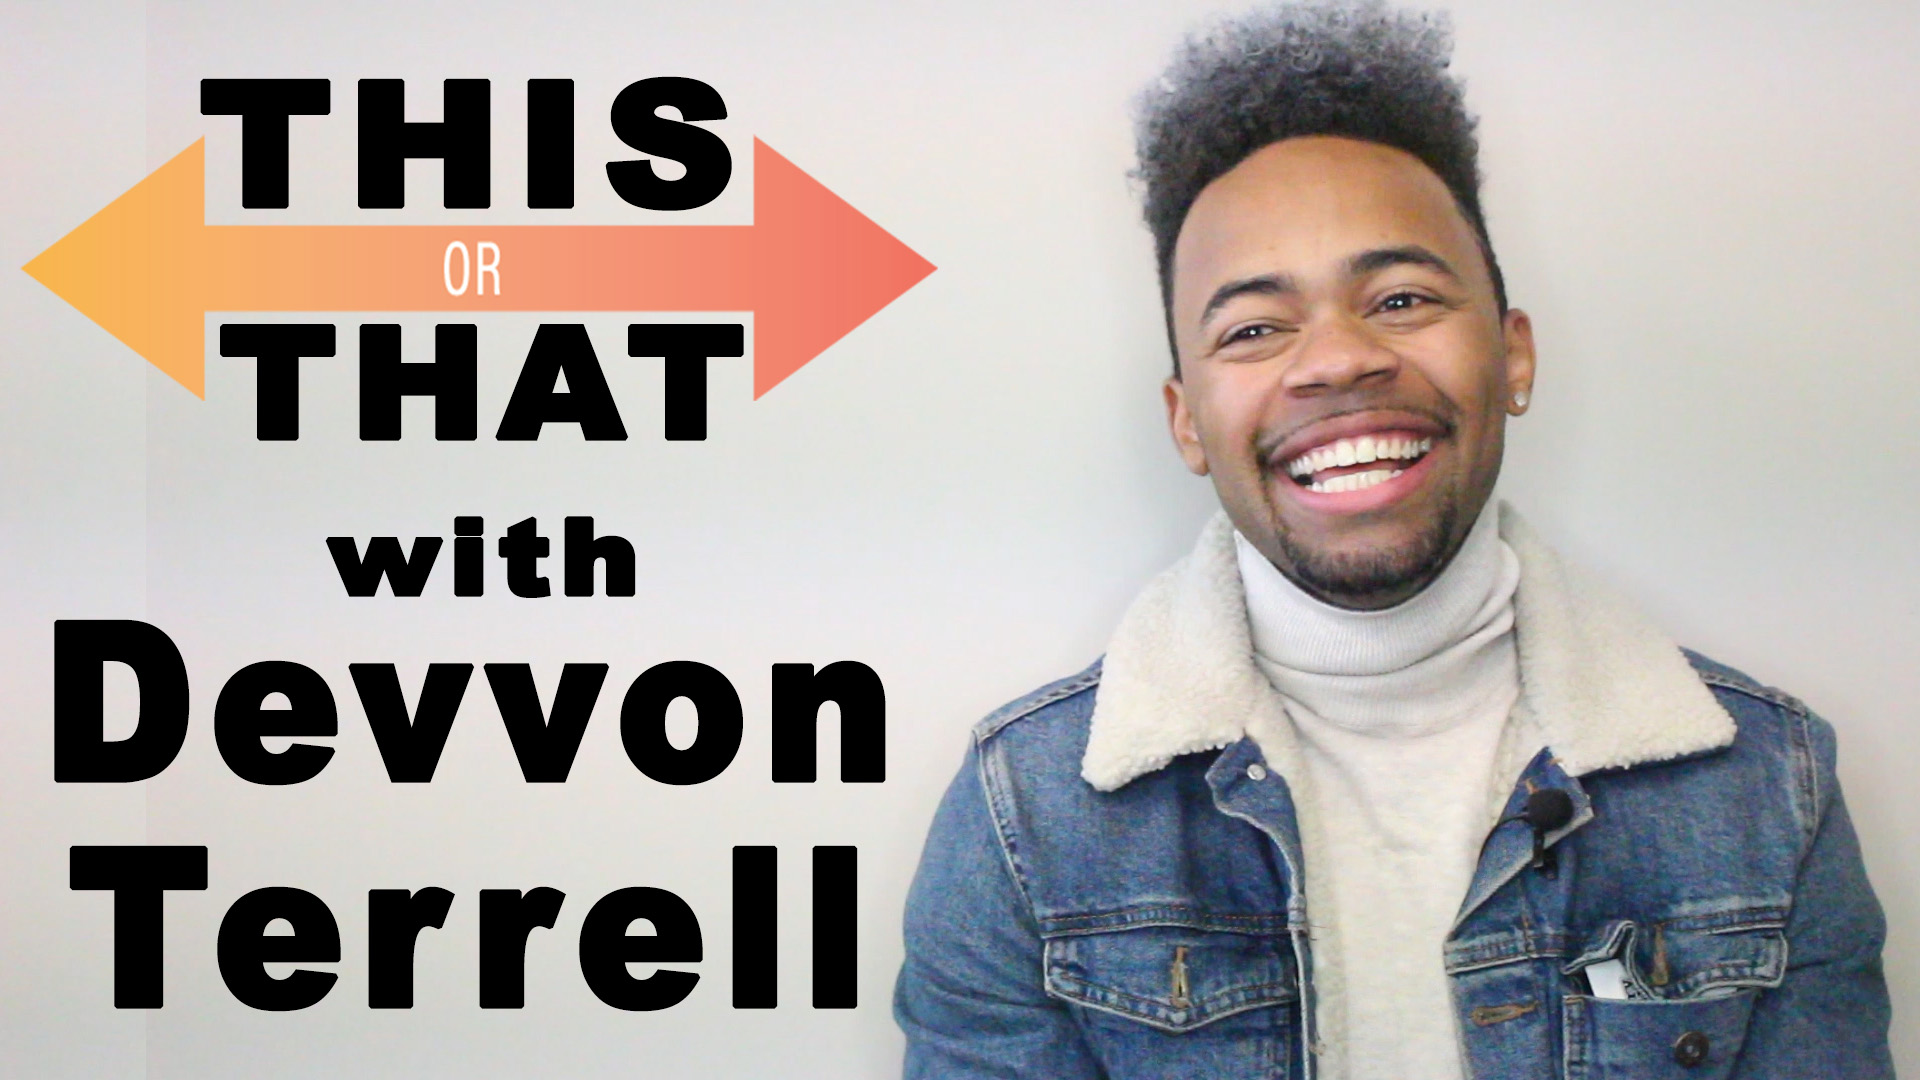 Devvon Terrell - 'This or That'